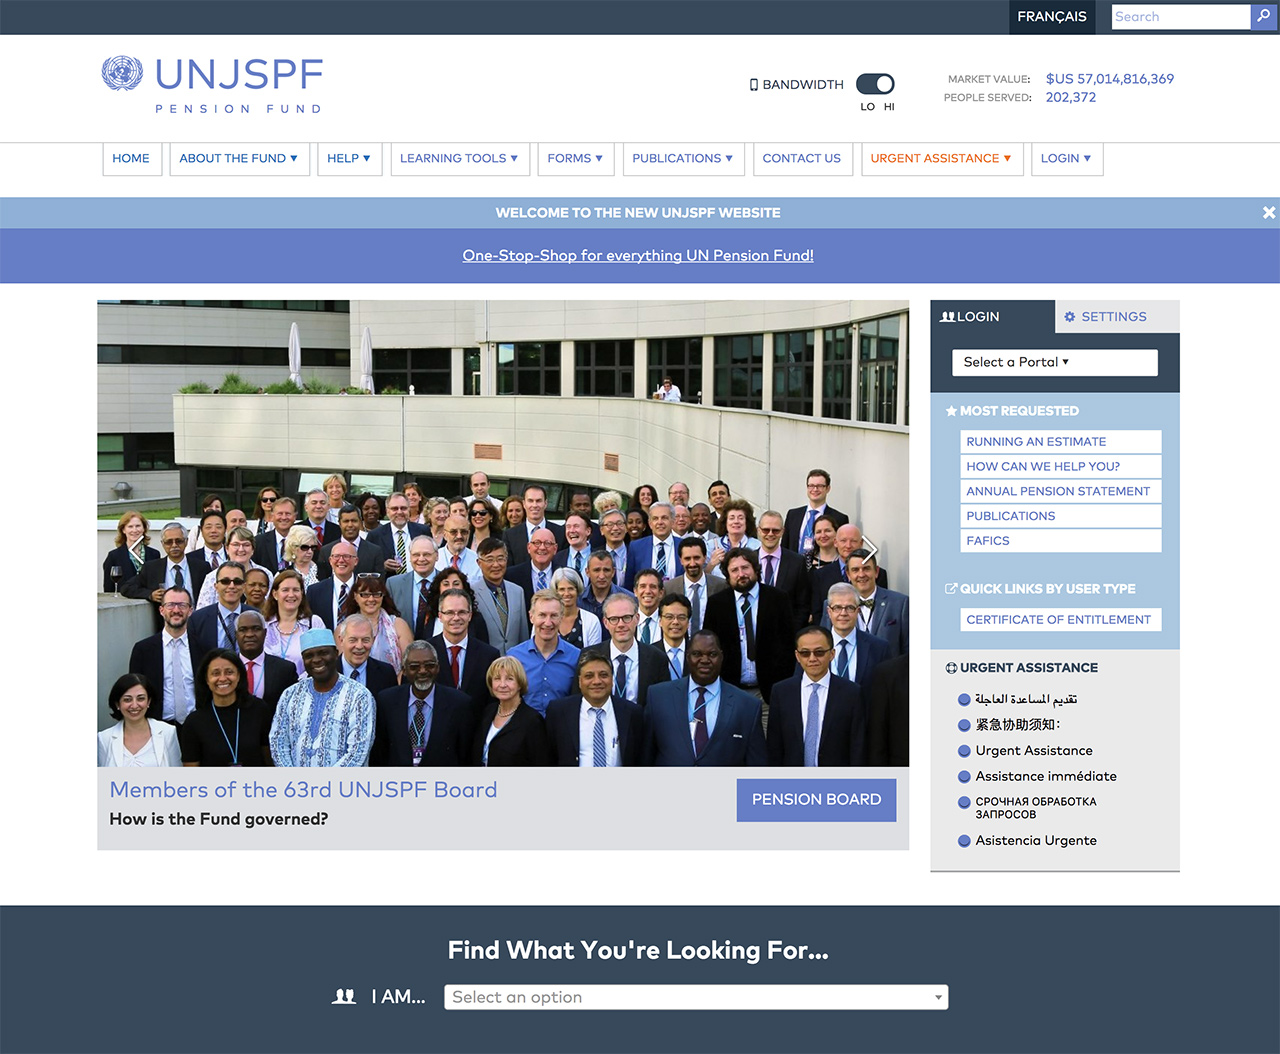 United Nations Joint Staff Pension Fund: UNJSPF Home